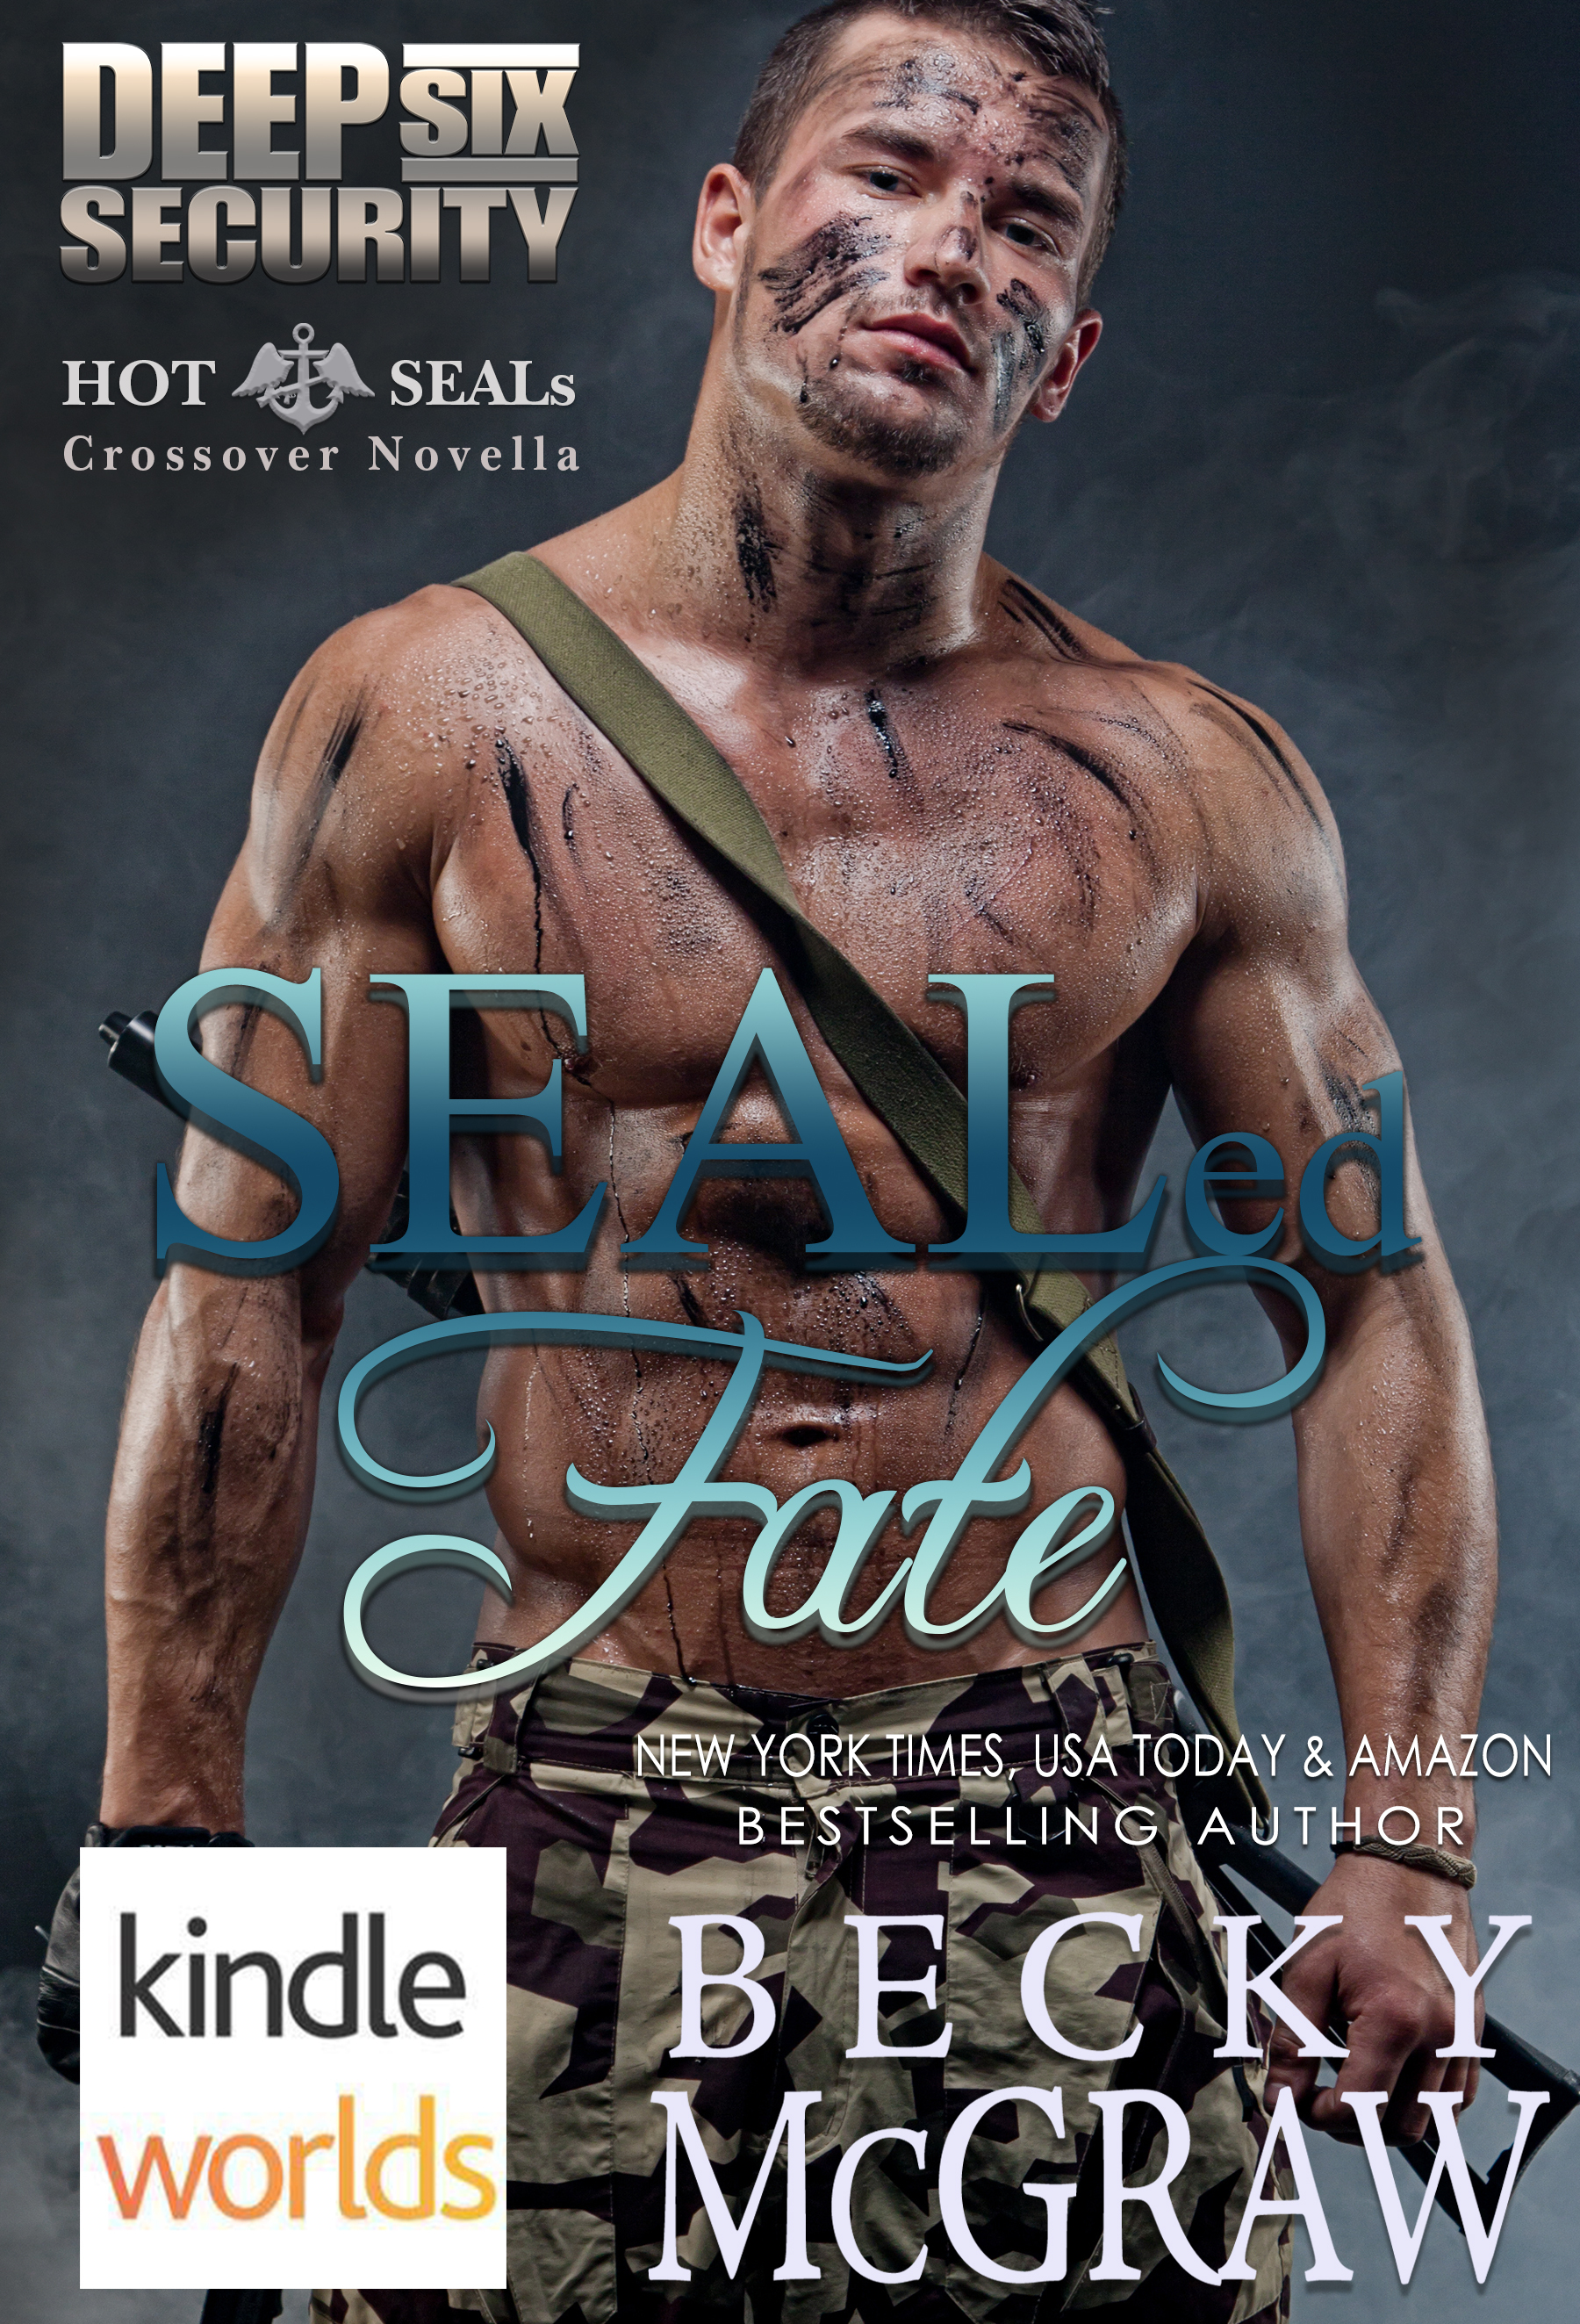 SEALed Fate (Deep Six Security/Hot SEALs Kindle Worlds Crossover Novella) Becky McGraw